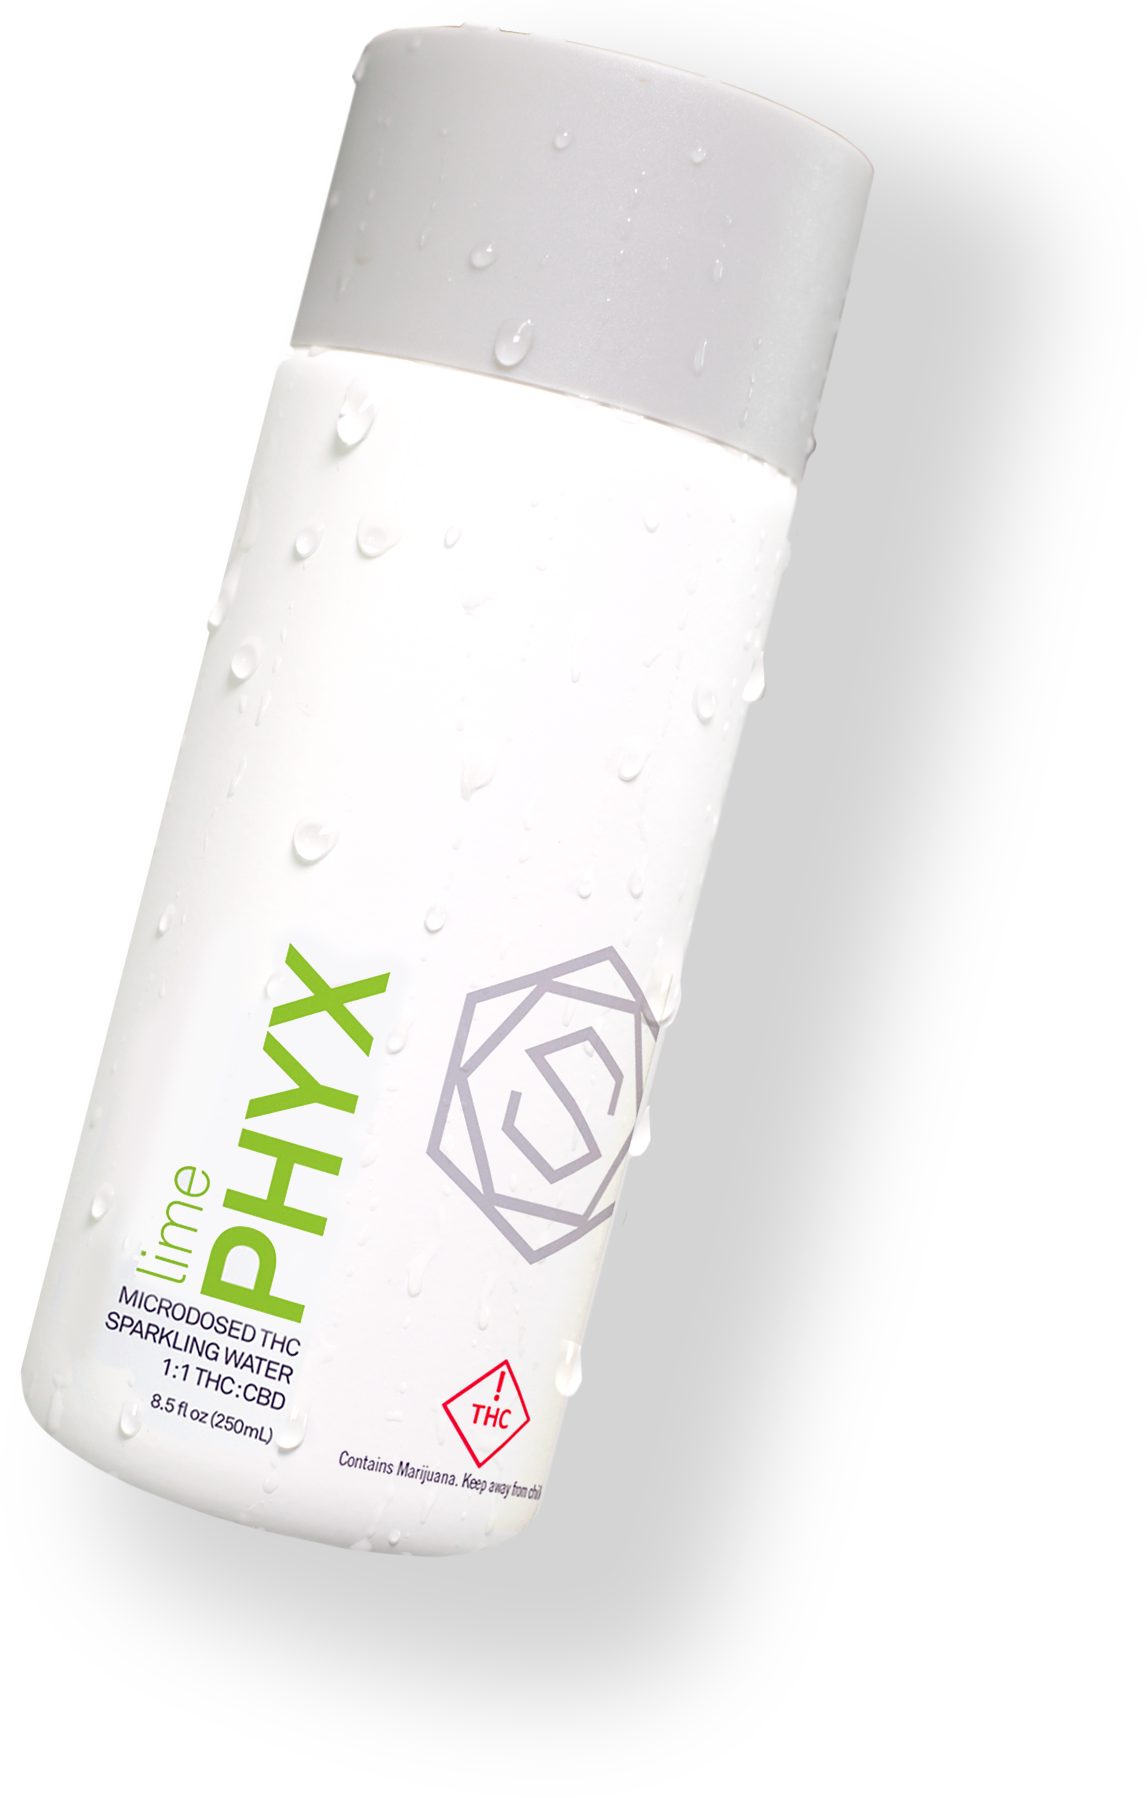 Phyx Lime bottle